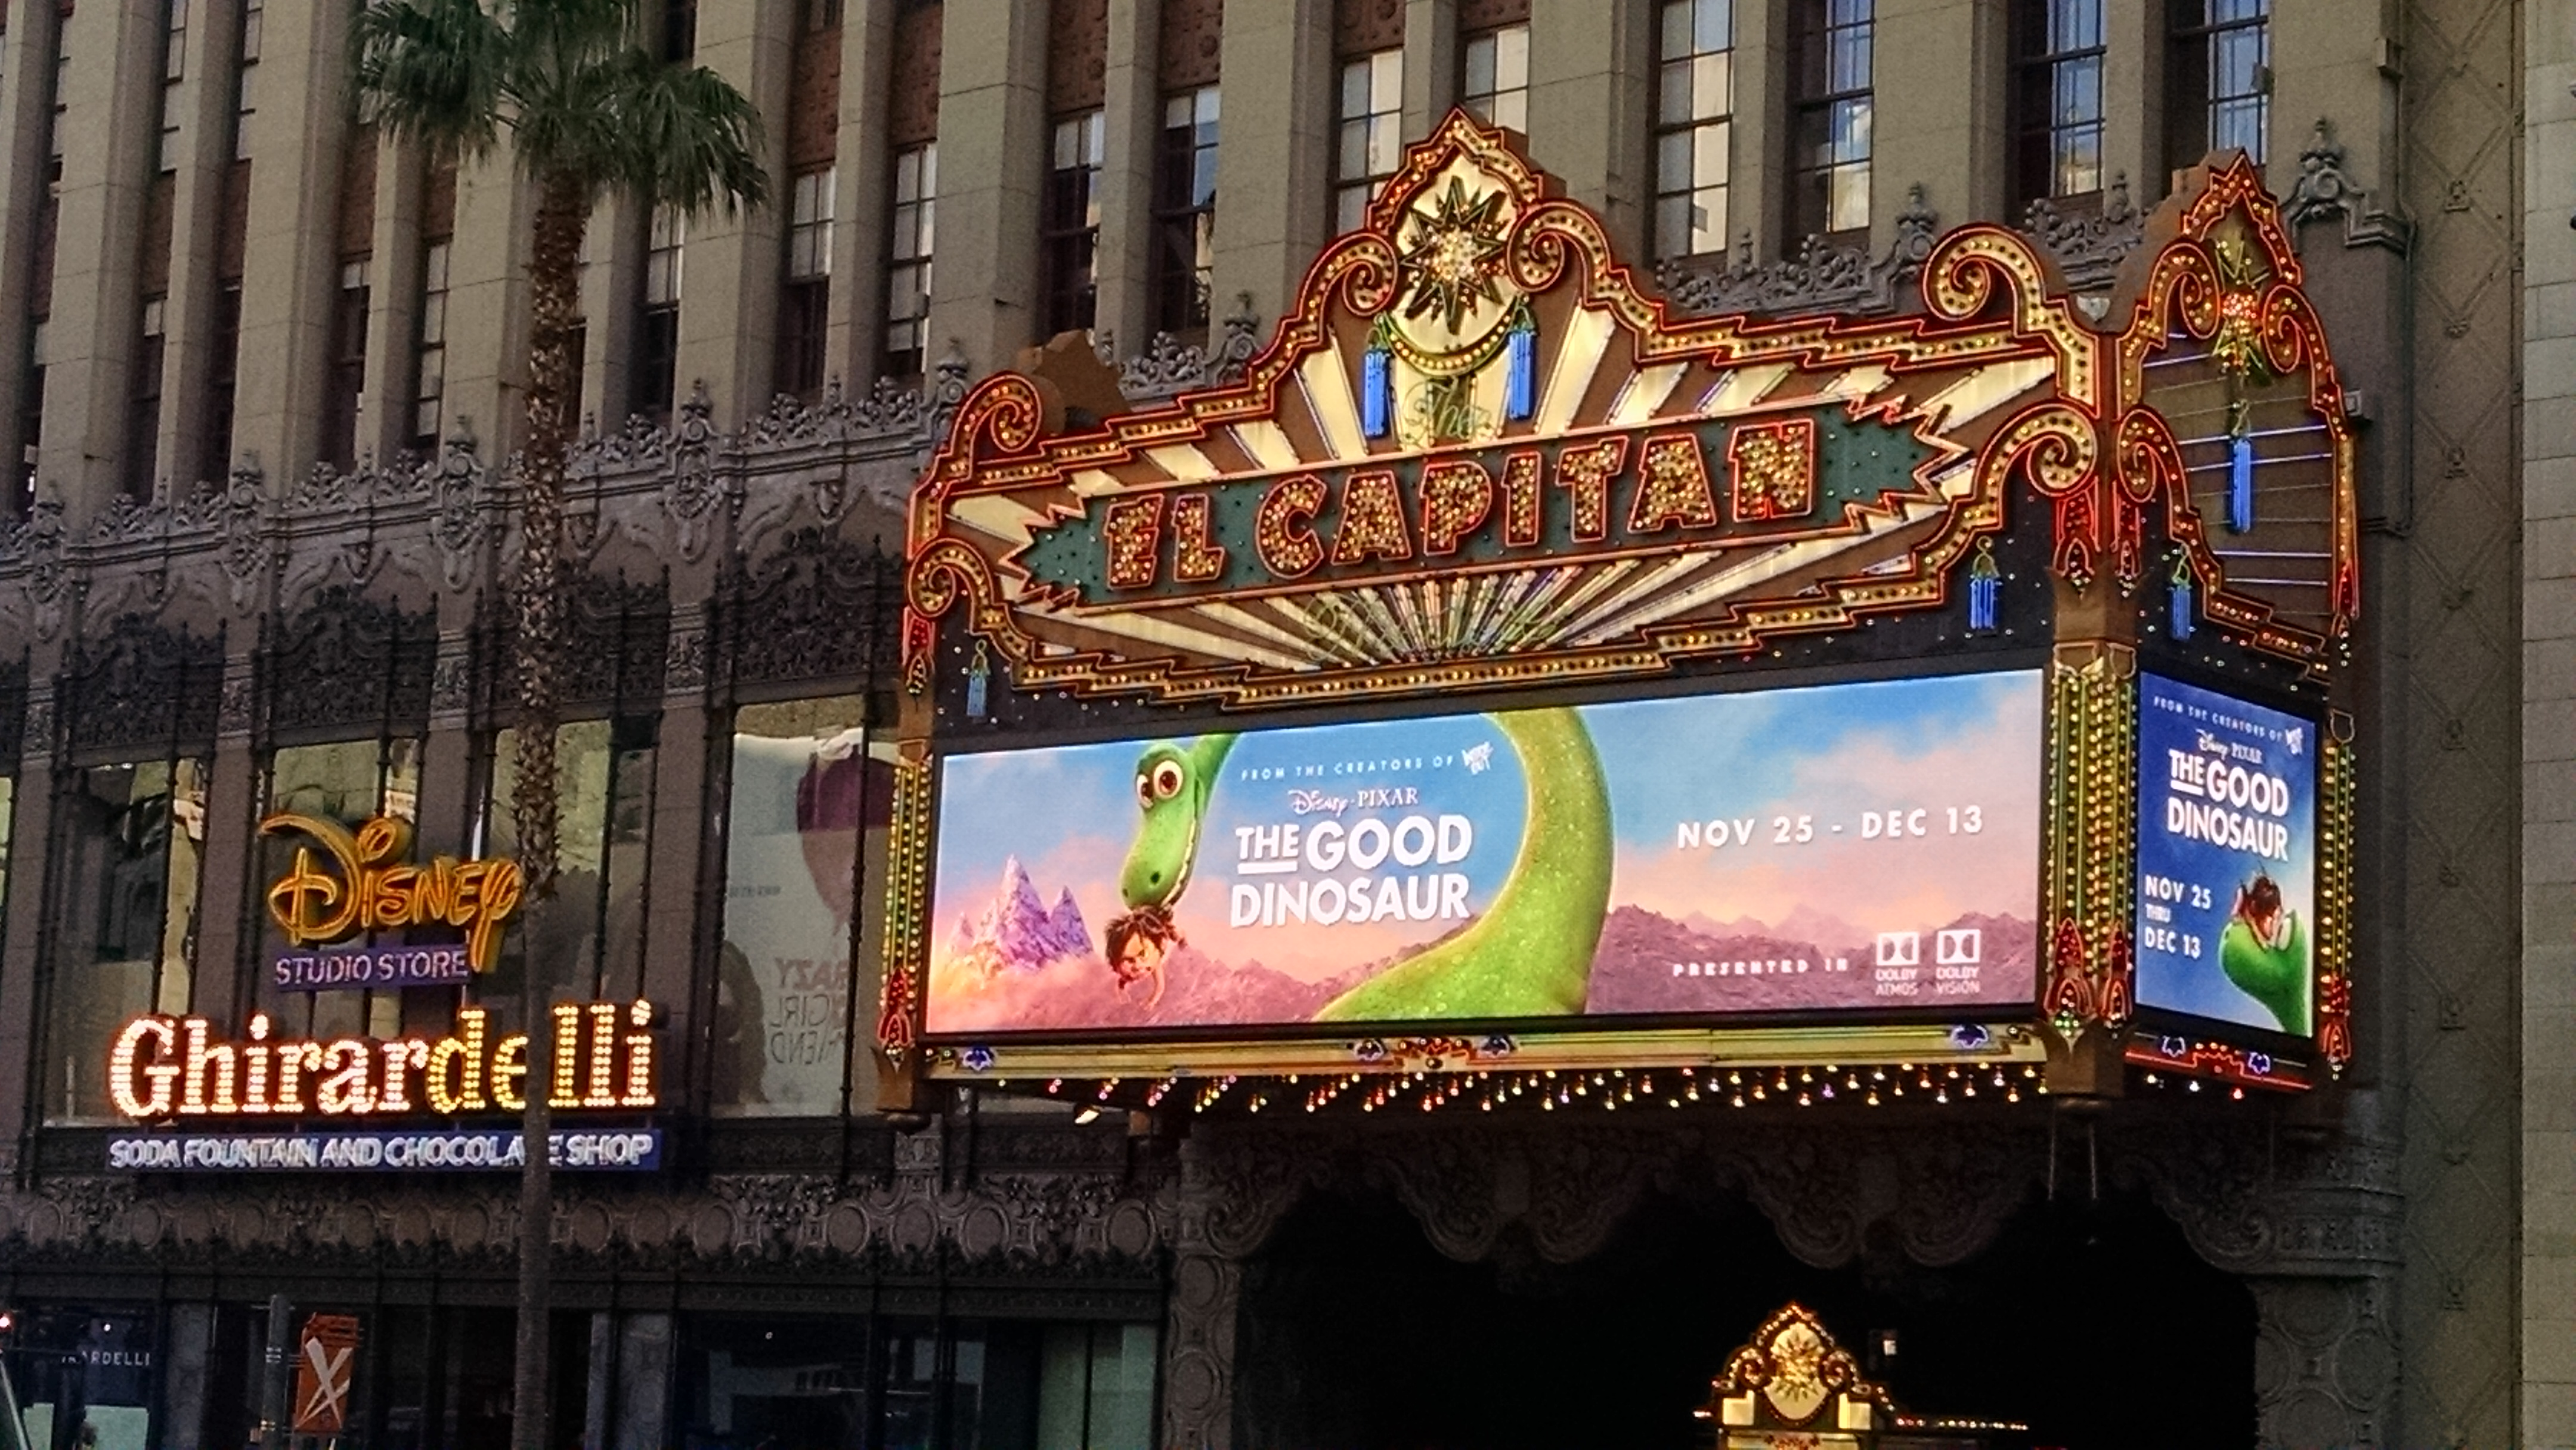 20 Years And Beyond: Toy Story and The Good Dinosaur at The El Capitan Theatre